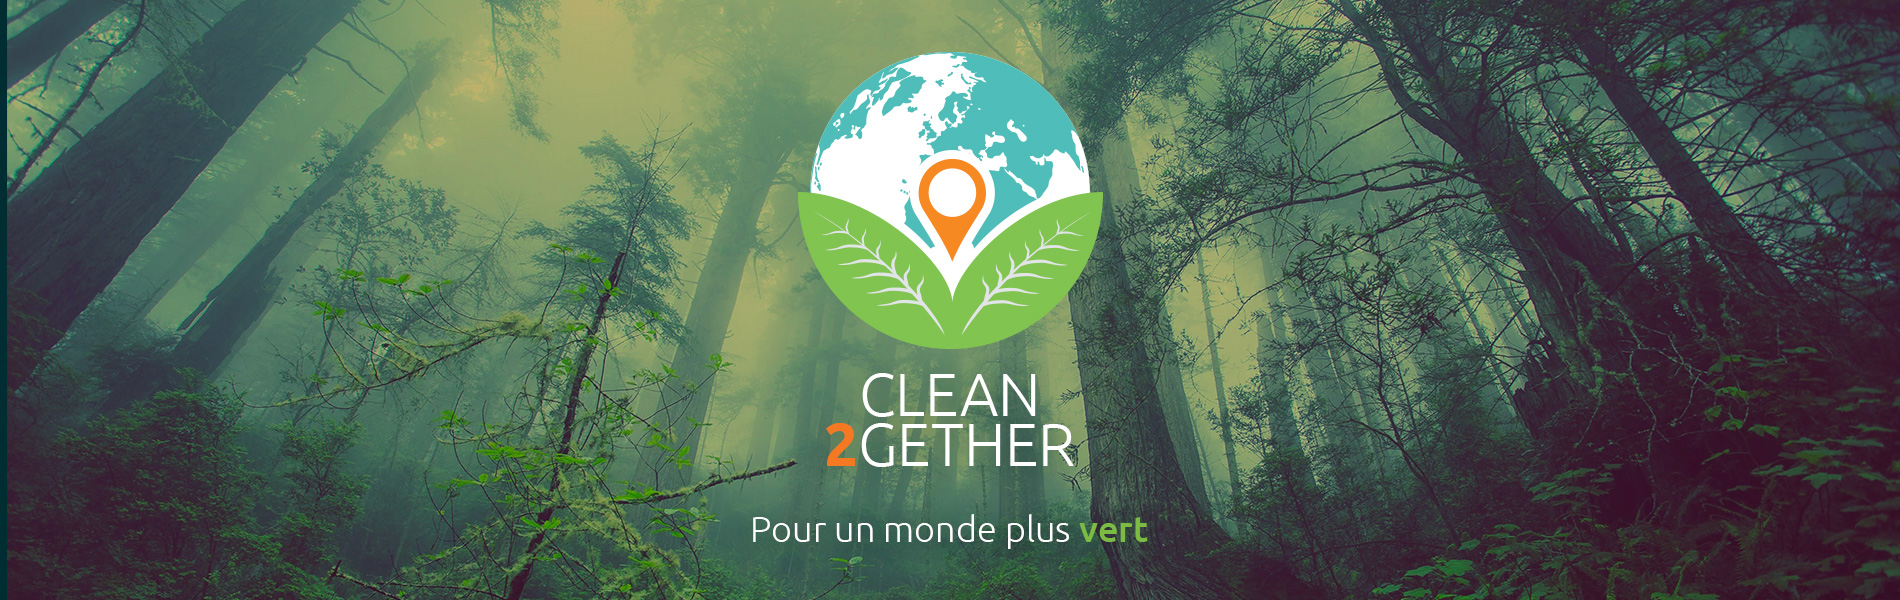 Suite de l'aventure Clean2gether